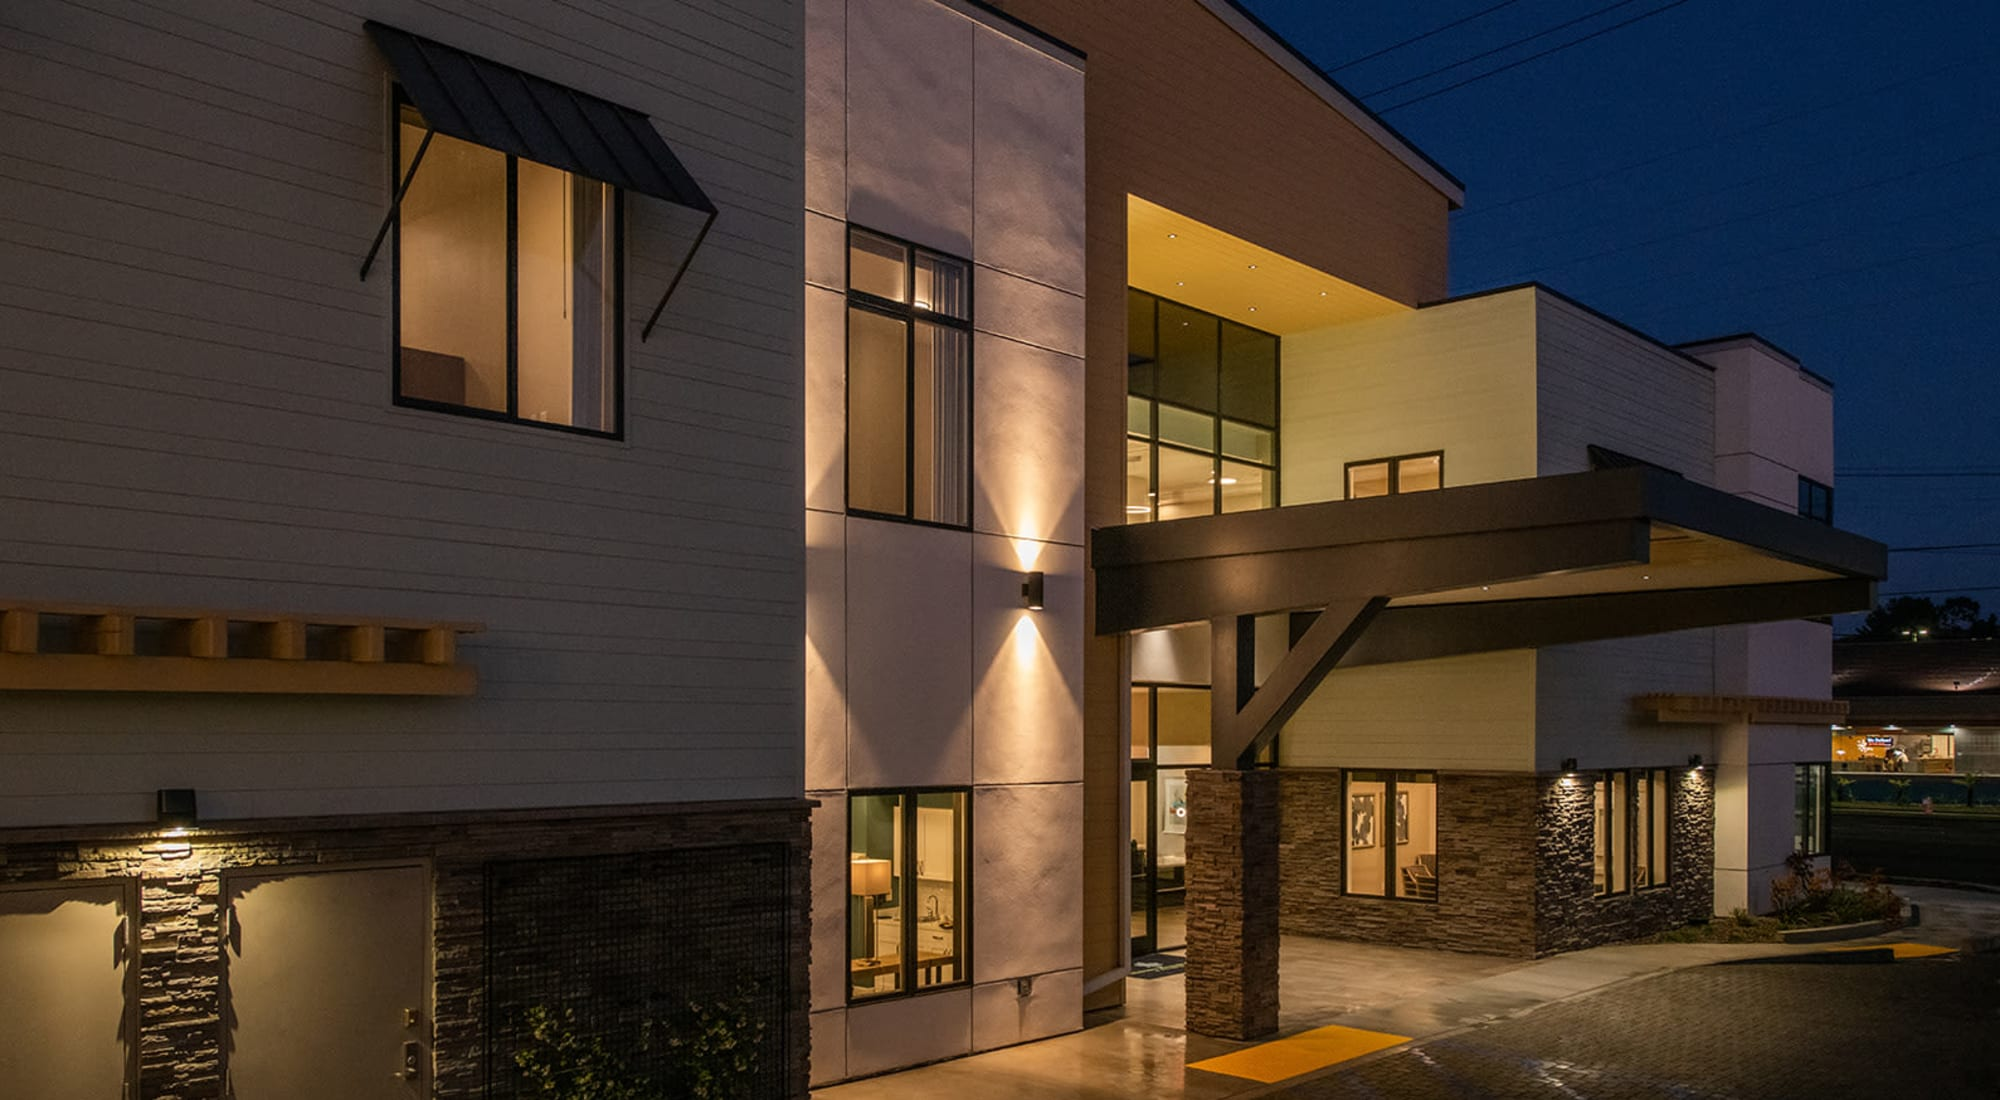 Nighttime exterior view of Seasons Memory Care at Rolling Hills in Torrance, California